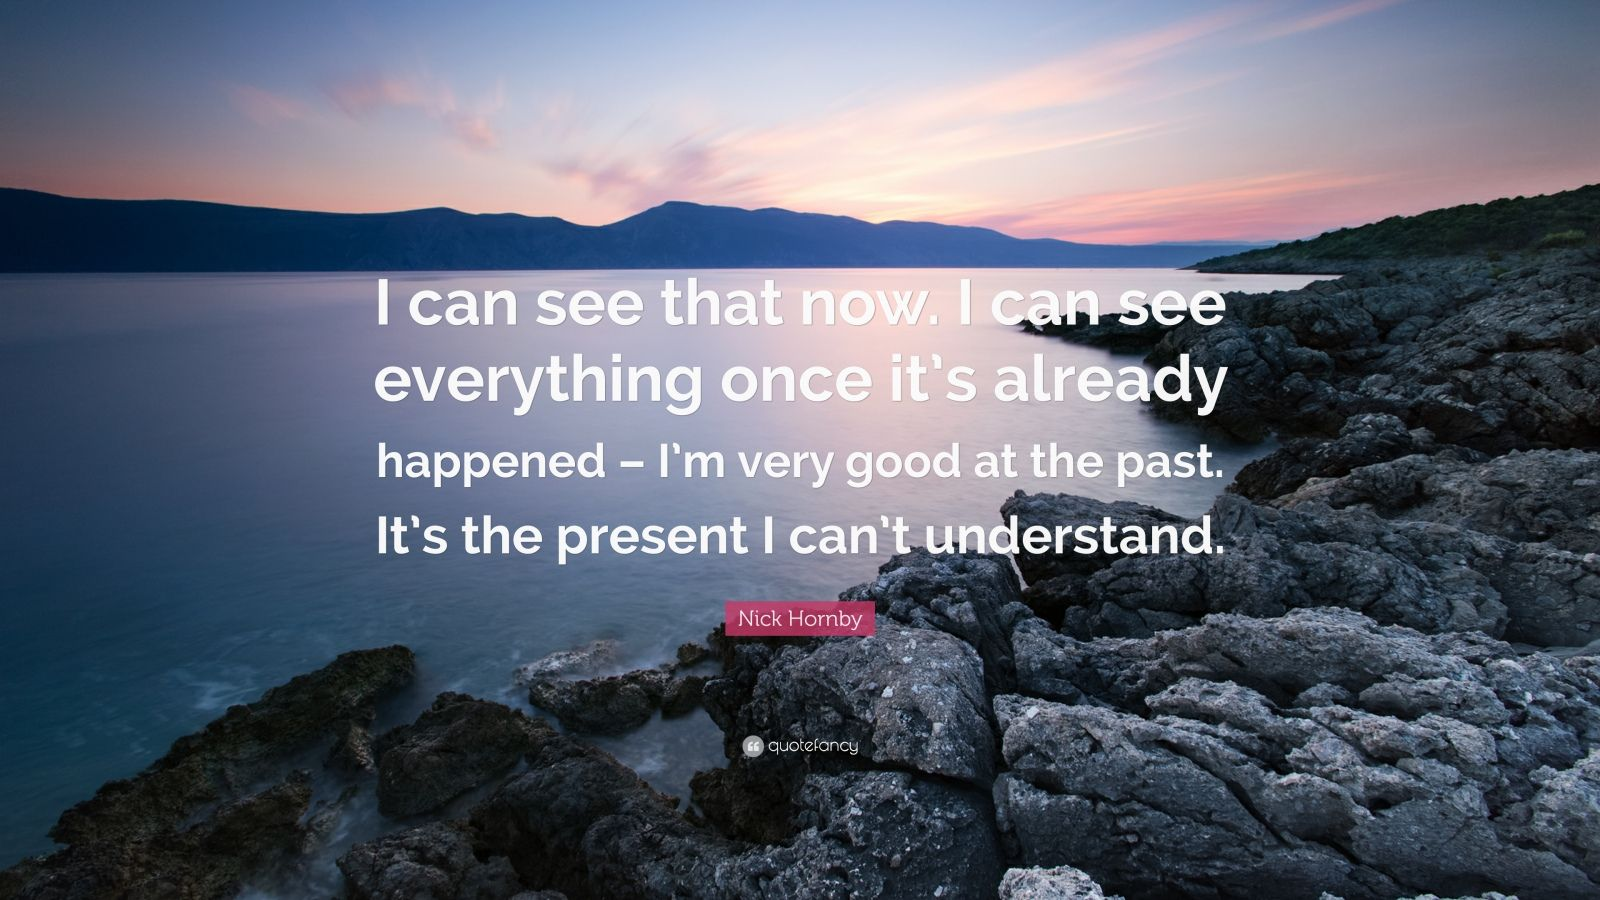 """Nick Hornby Quote: """"I can see that now. I can see everything once it's already happened – I'm very good at the past. It's the present I can't understand."""""""